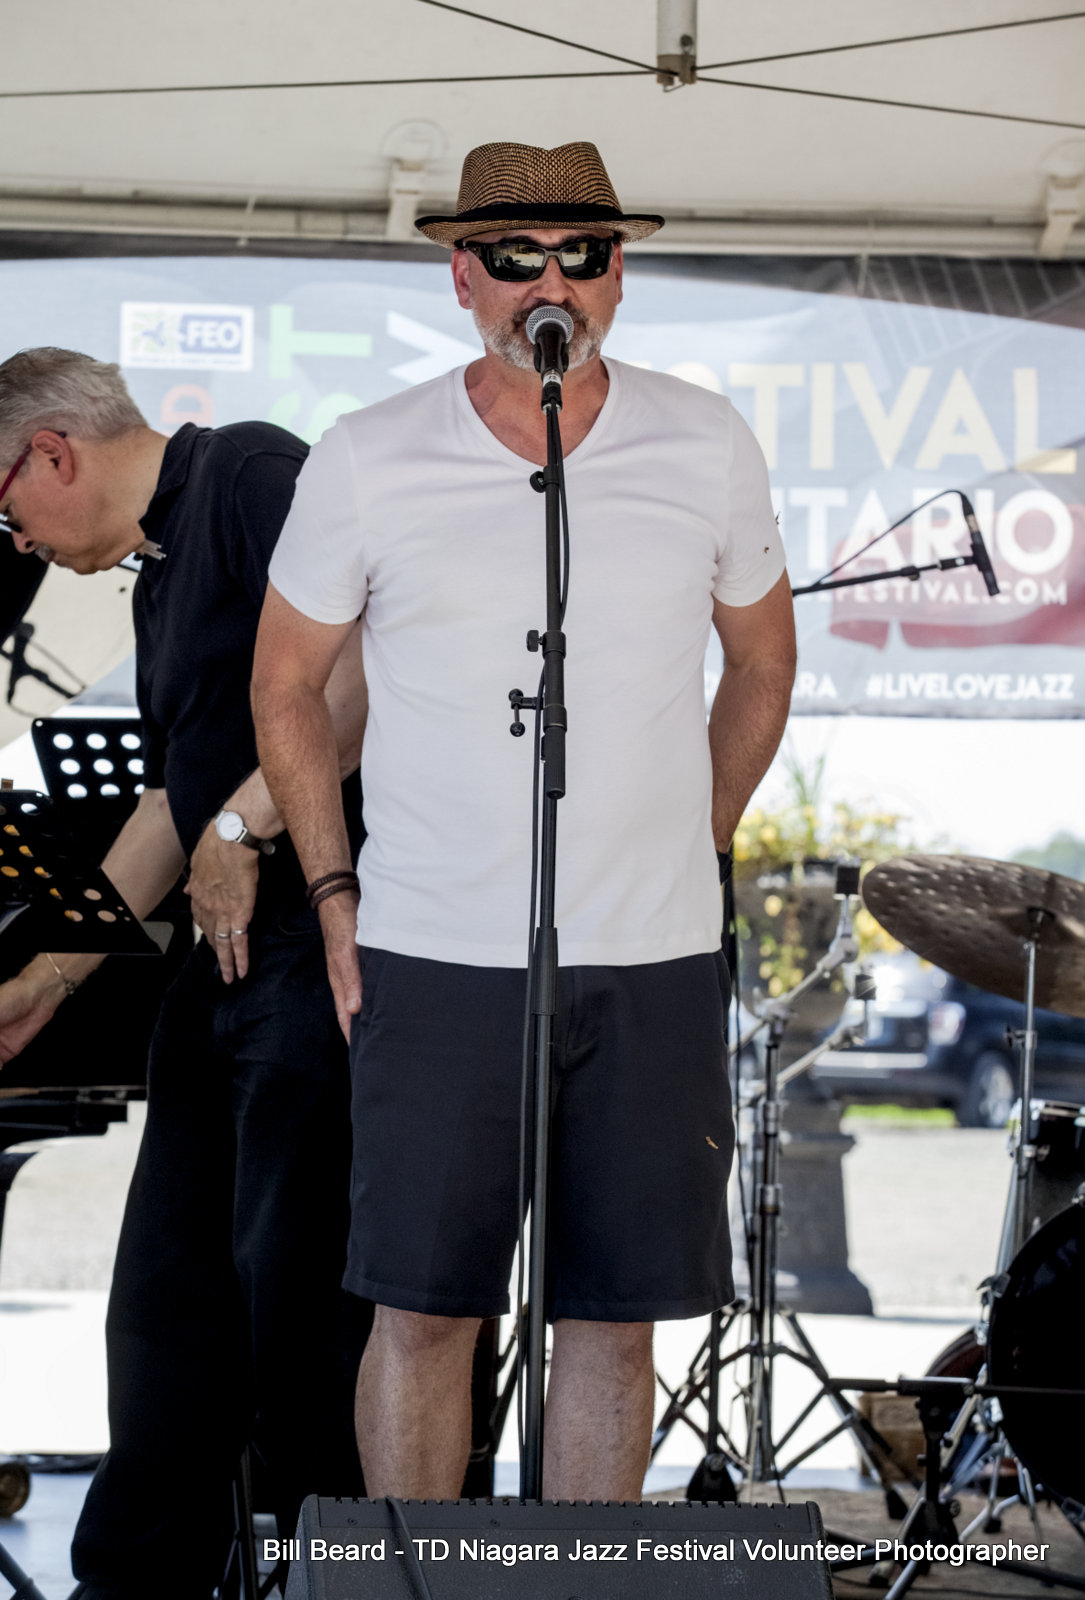 Jazz.FM 91.1 Emcee Walter Venafro at JAZZ on the RISE - Canada 150 Celebration - Megalomaniac Winery - Sunday, July 30th, 2017. Photo: Bill Beard